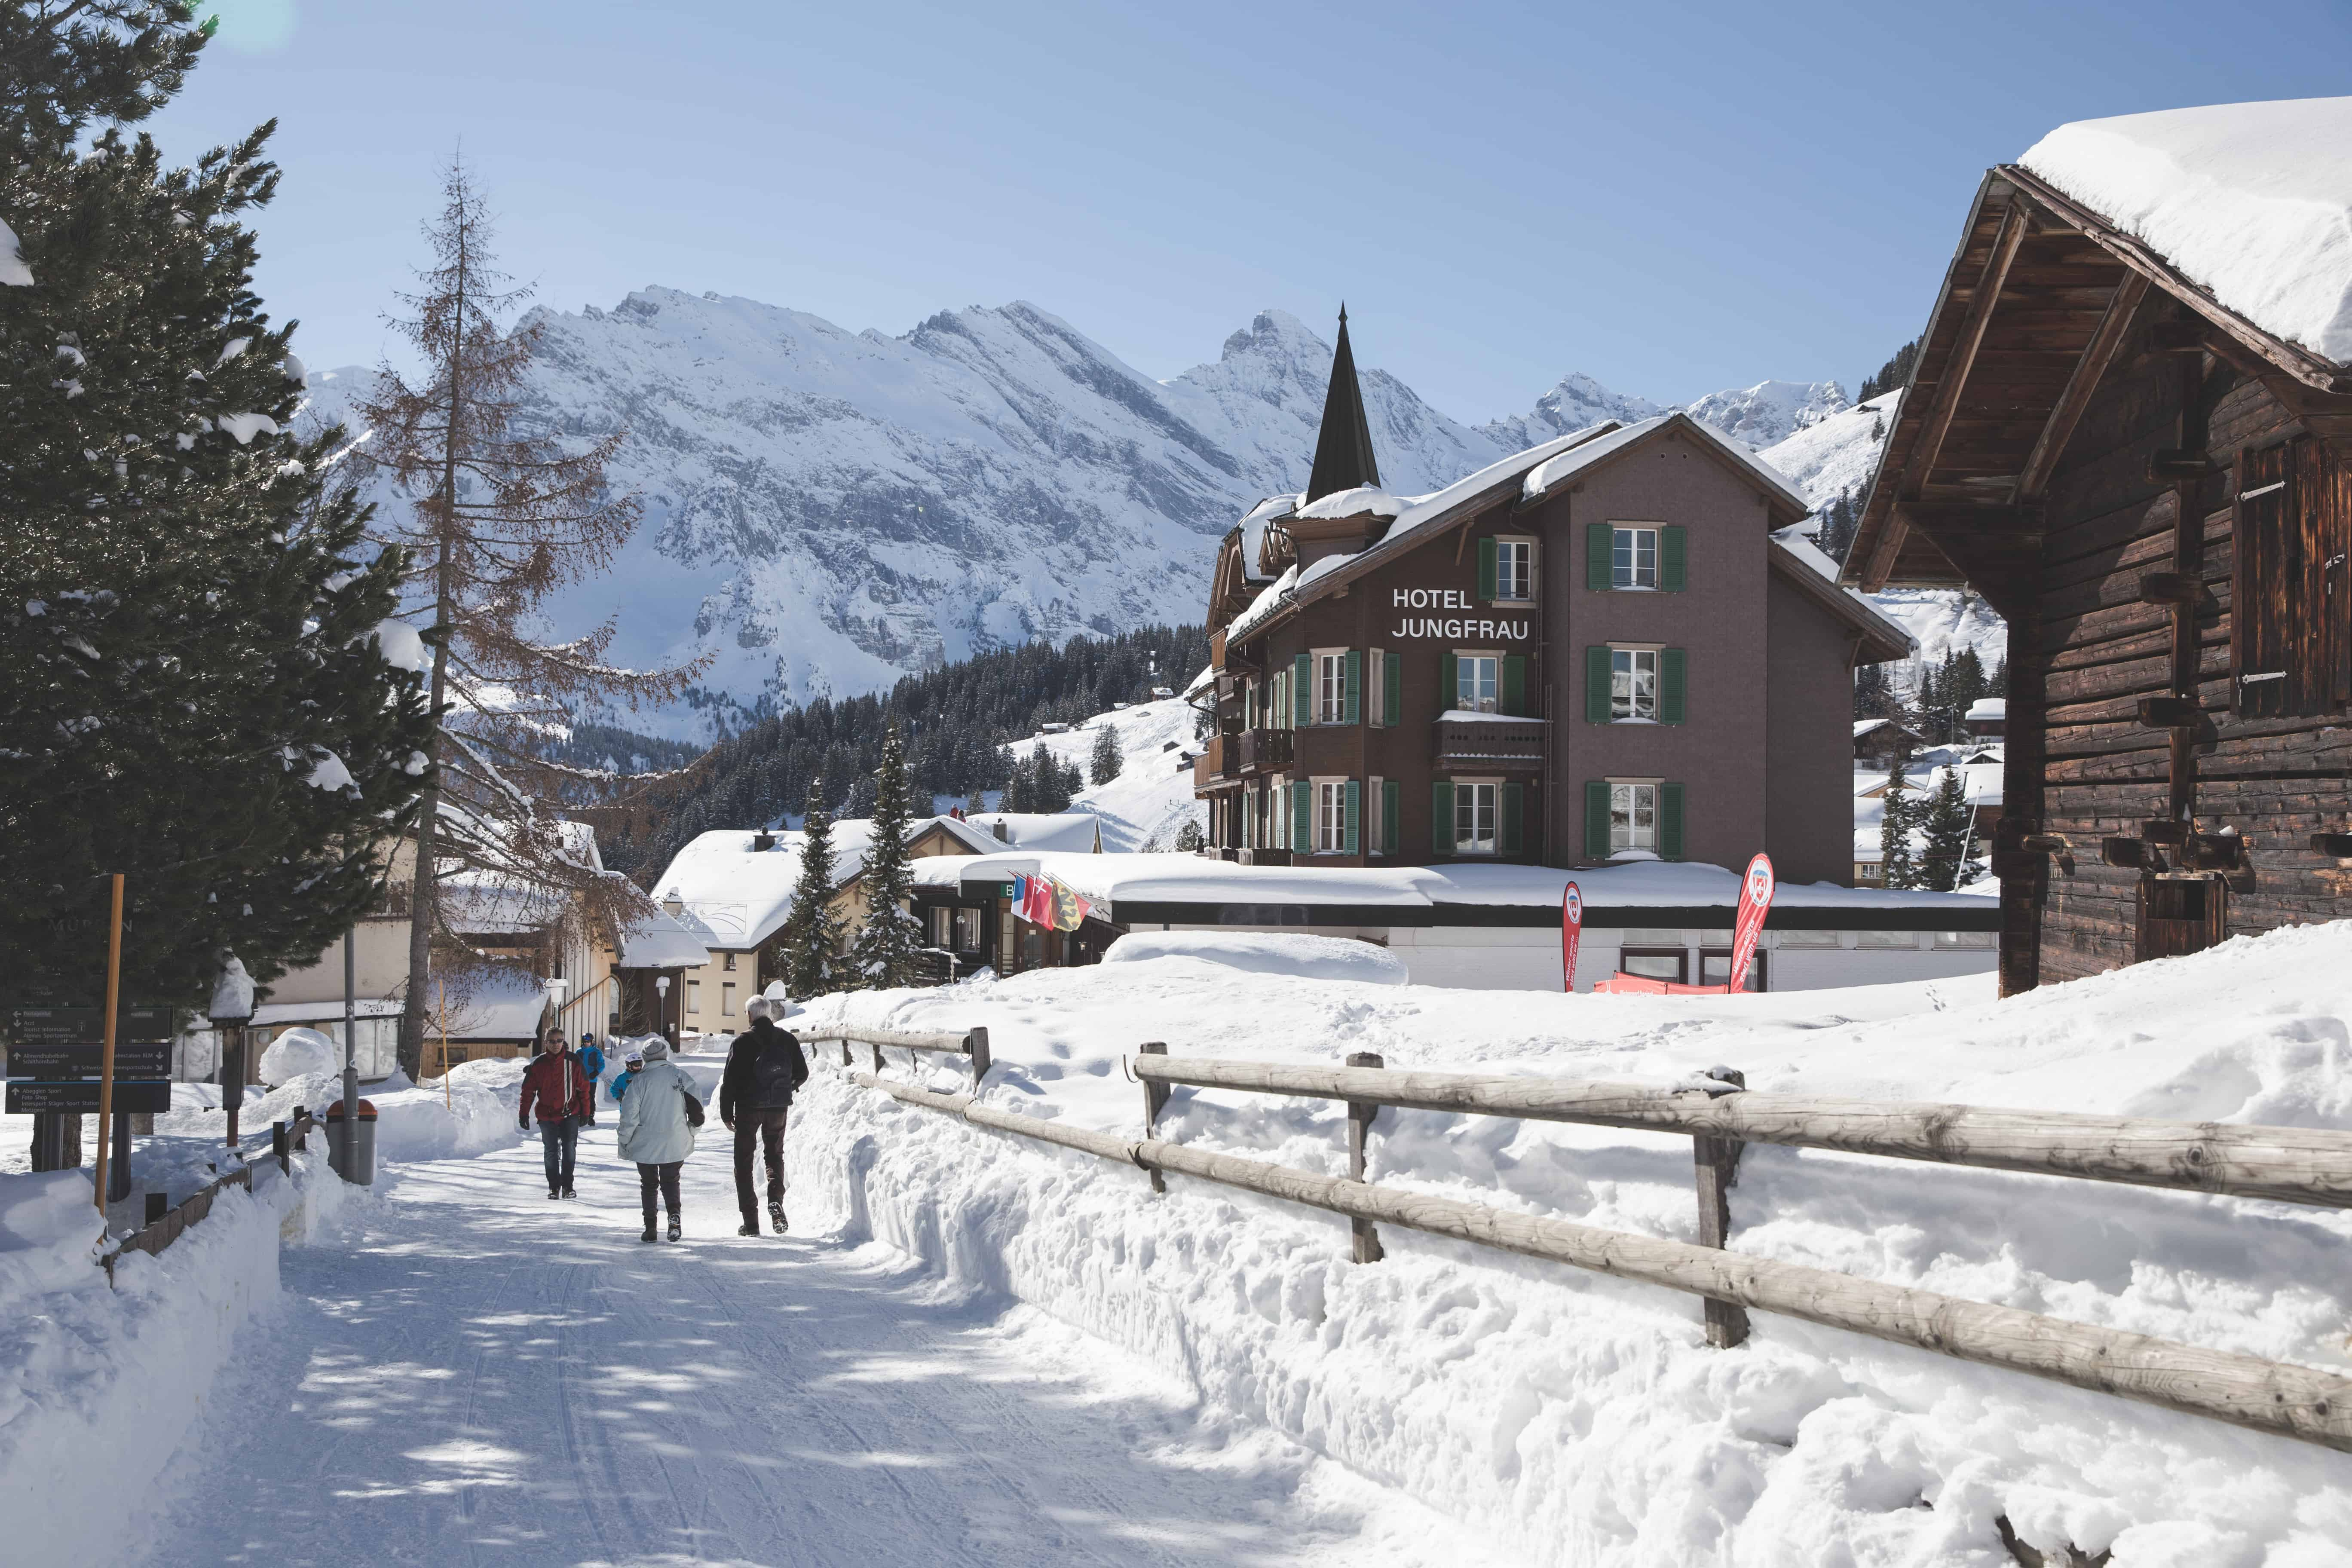 Mürren is classic Swiss Alps ski town, and a great winter day trip from Basel, Switzerland!